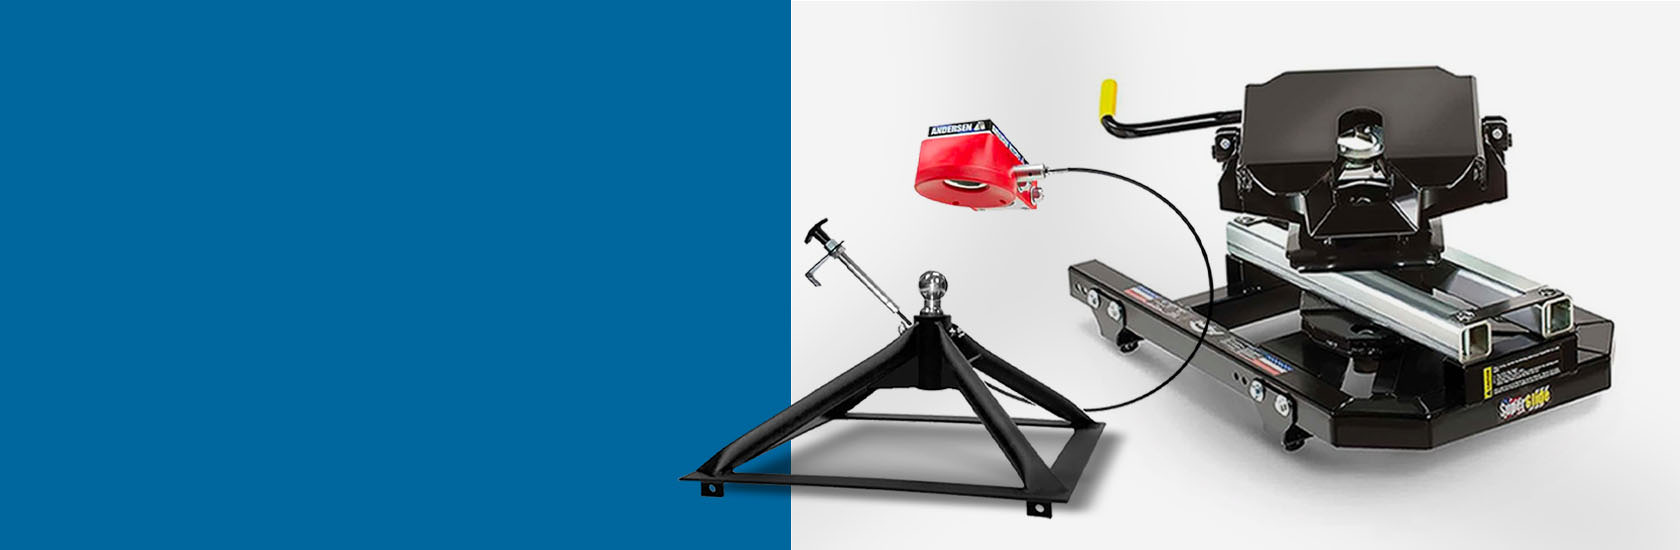 Save up to $250 on the Best Assortment of Fifth Wheel Hitches